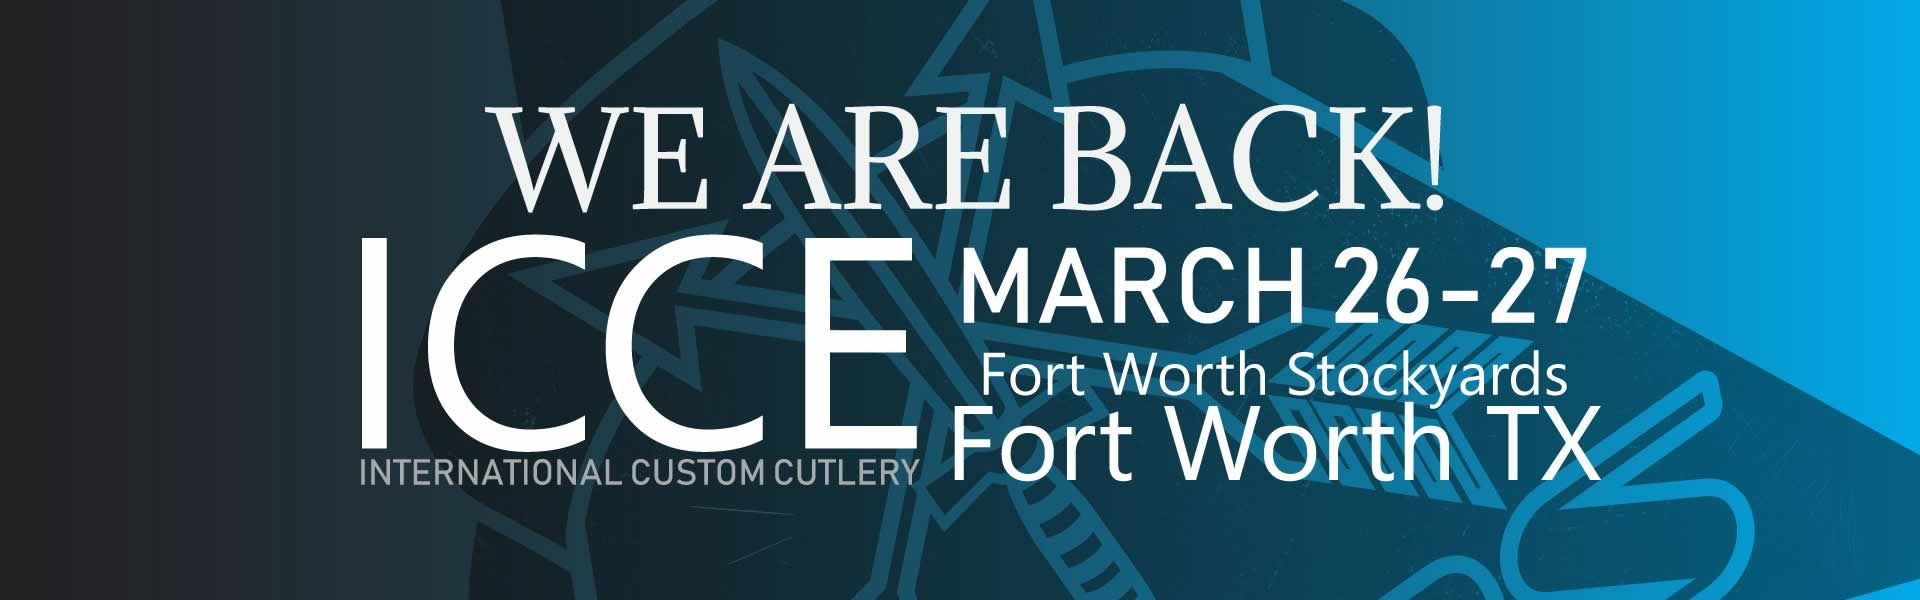 ICCE March 26-27